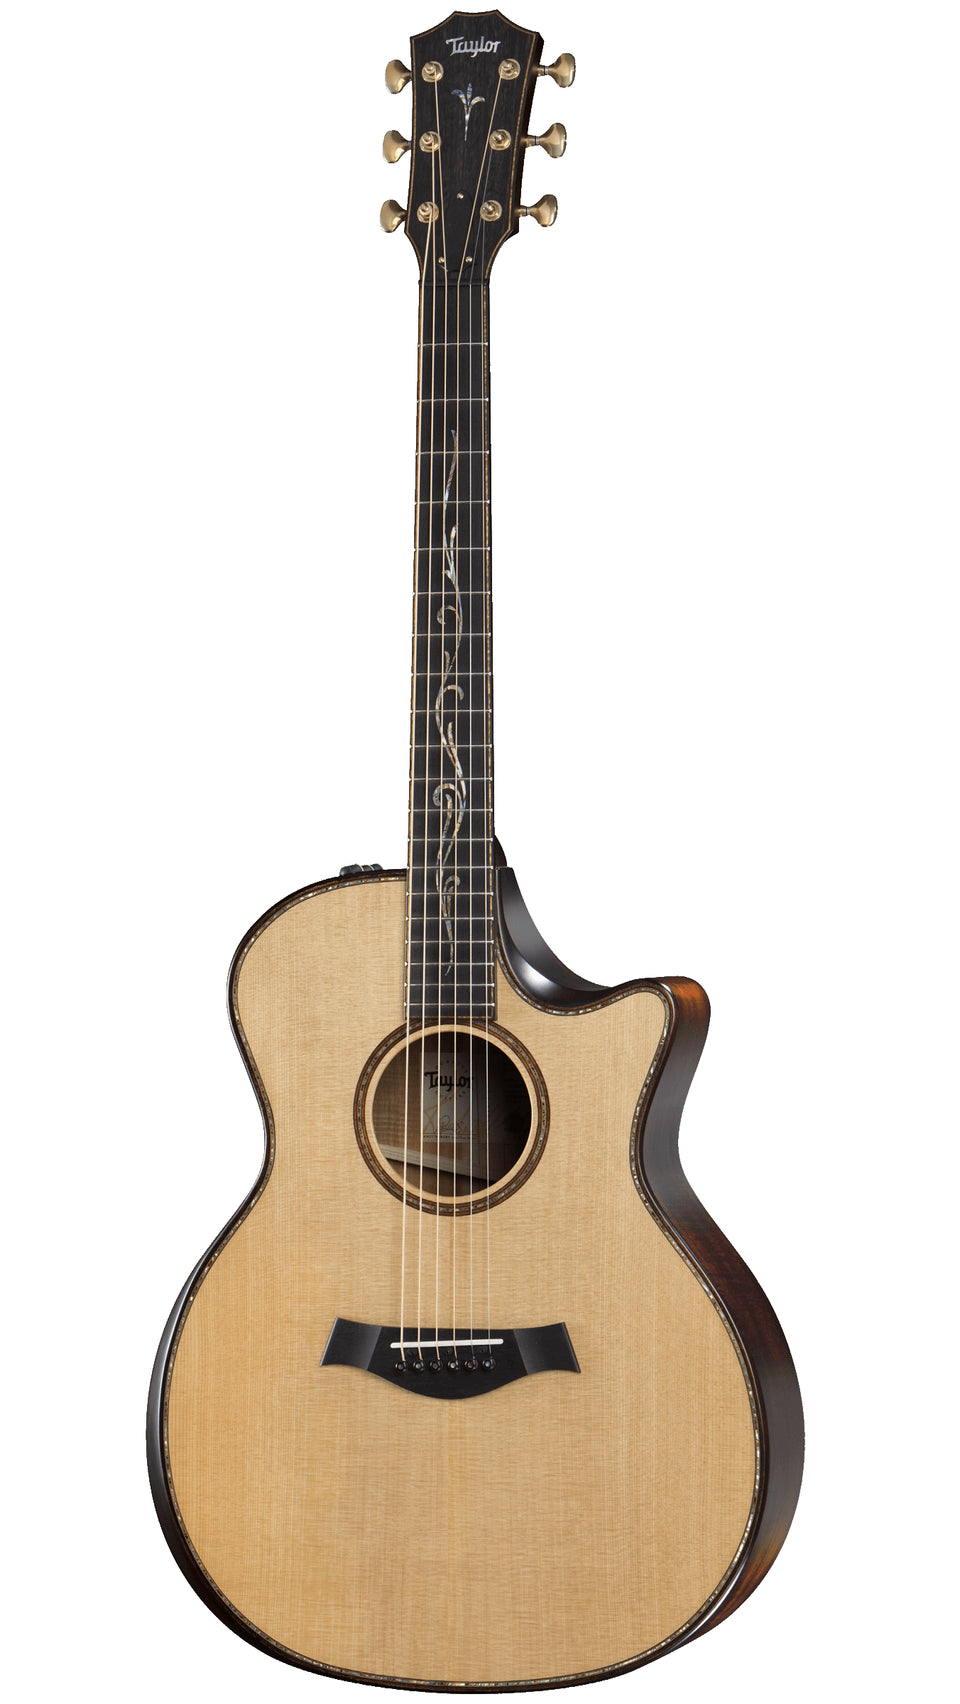 Taylor Builder's Edition K14ce Acoustic Guitar